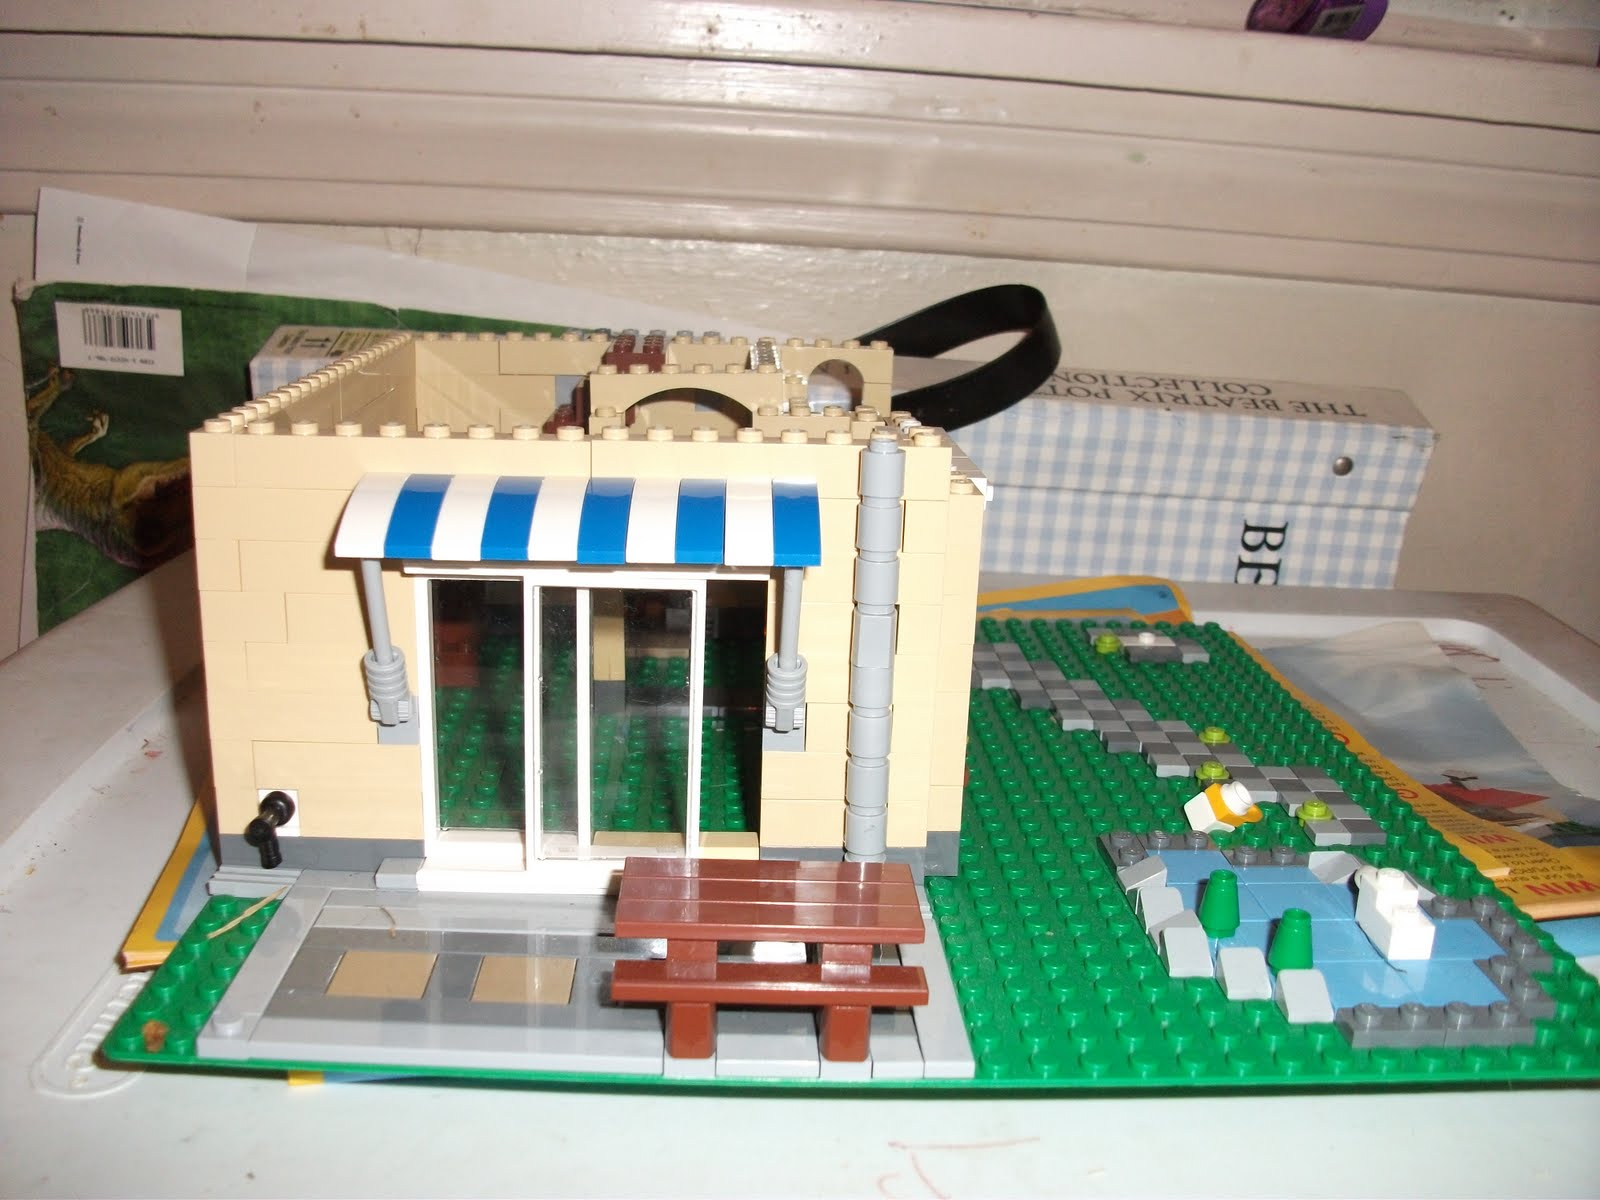 The blue and white awning hangs over sliding  glass  doors. Yes the doors can slide open! Thereu0027s a picnic table for the Lego ... & All You Need is Love: Lego Chronicles - Part 3